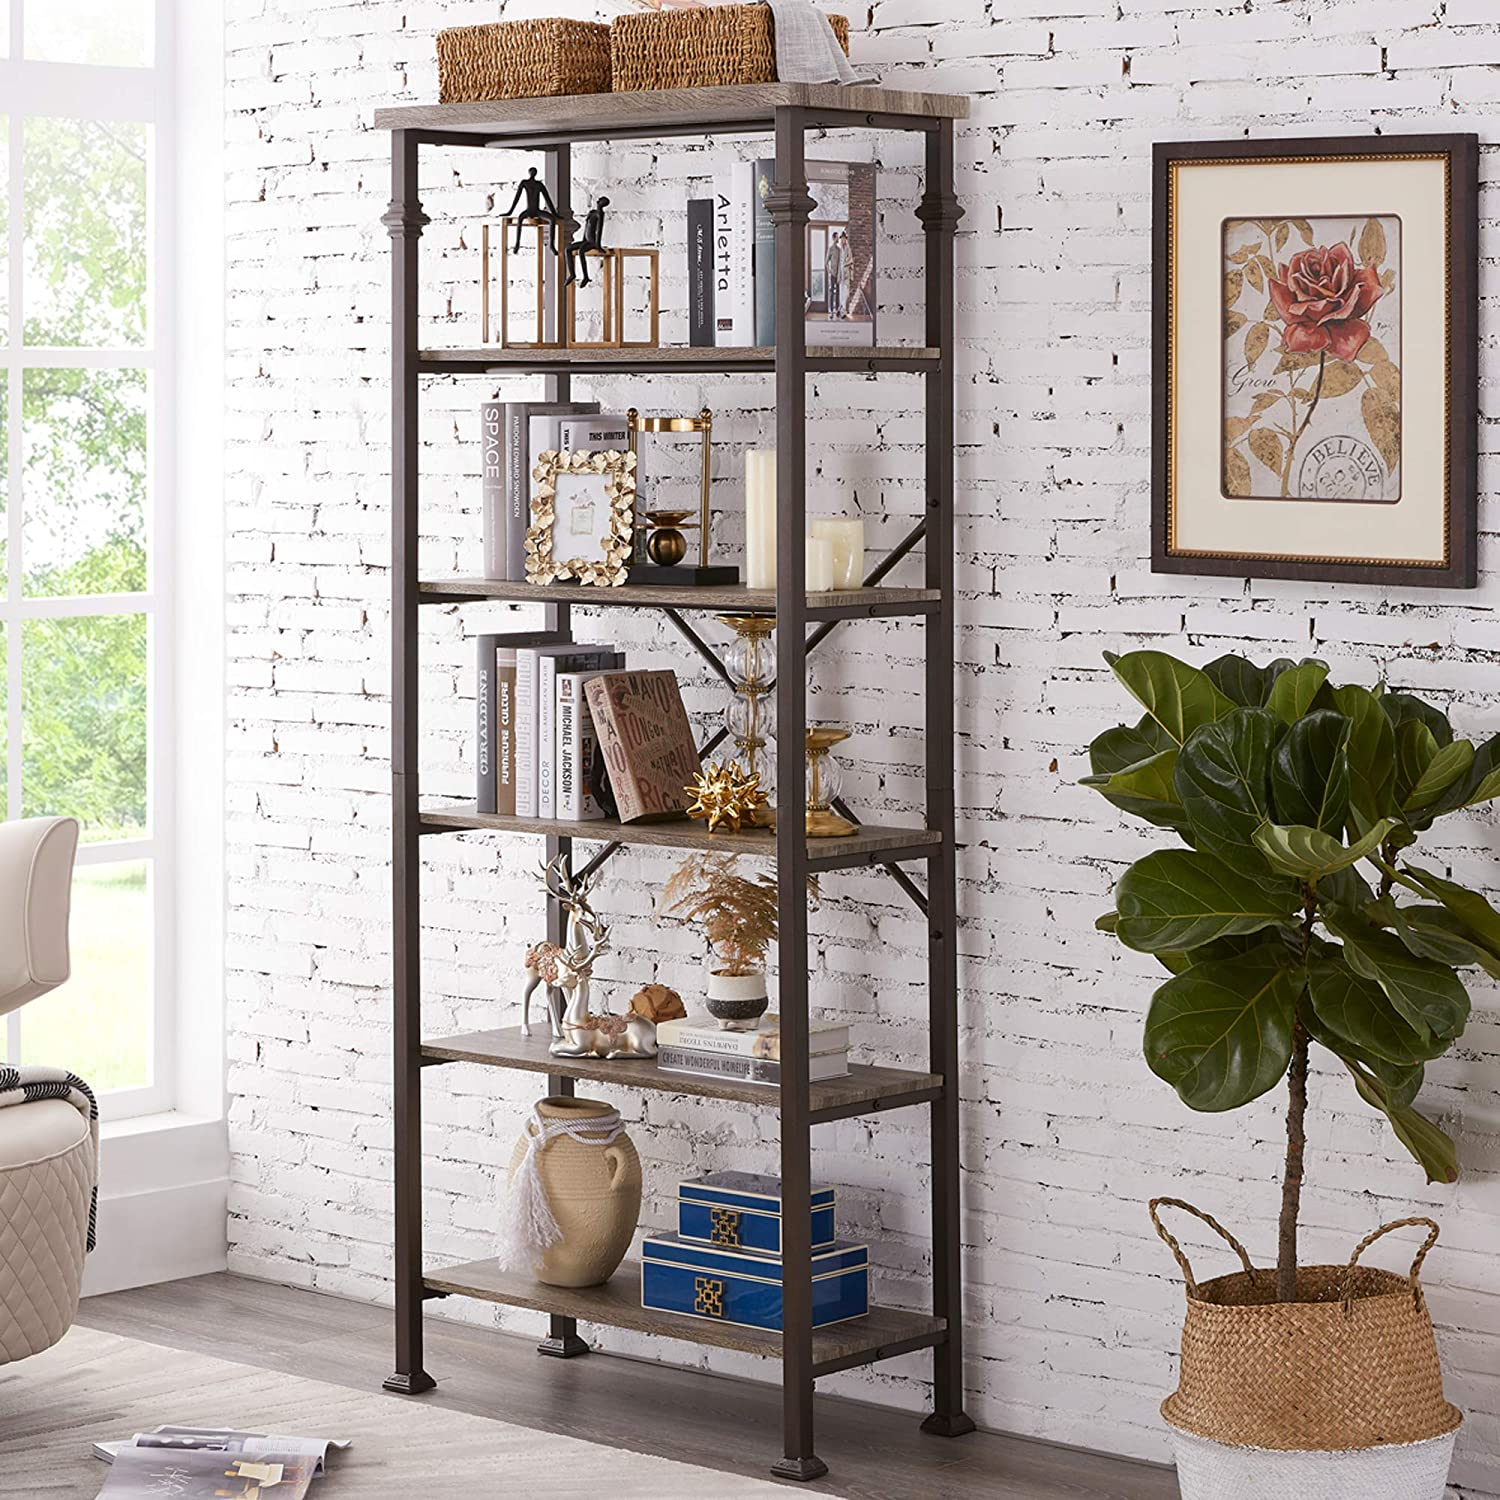 Hombazaar 6-Tier Tall Bookshelf, Vintage Industrial Metal Bookcase Display Rack and Storage Organizer for Living Room, Grey Oak